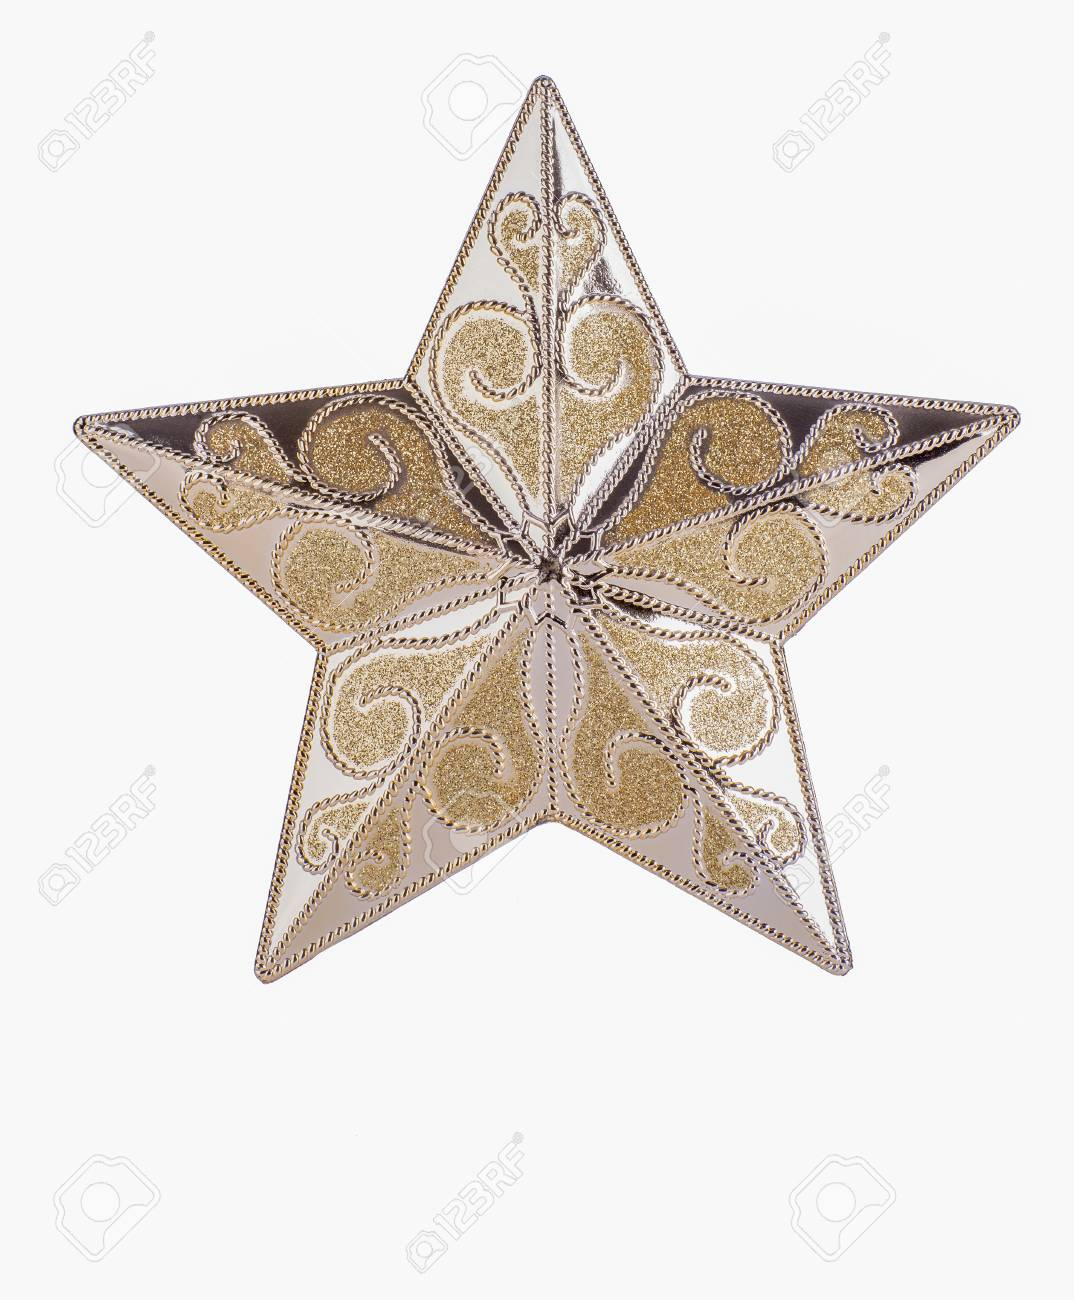 Gold patterned star on white background with copy space Stock Photo - 20327655